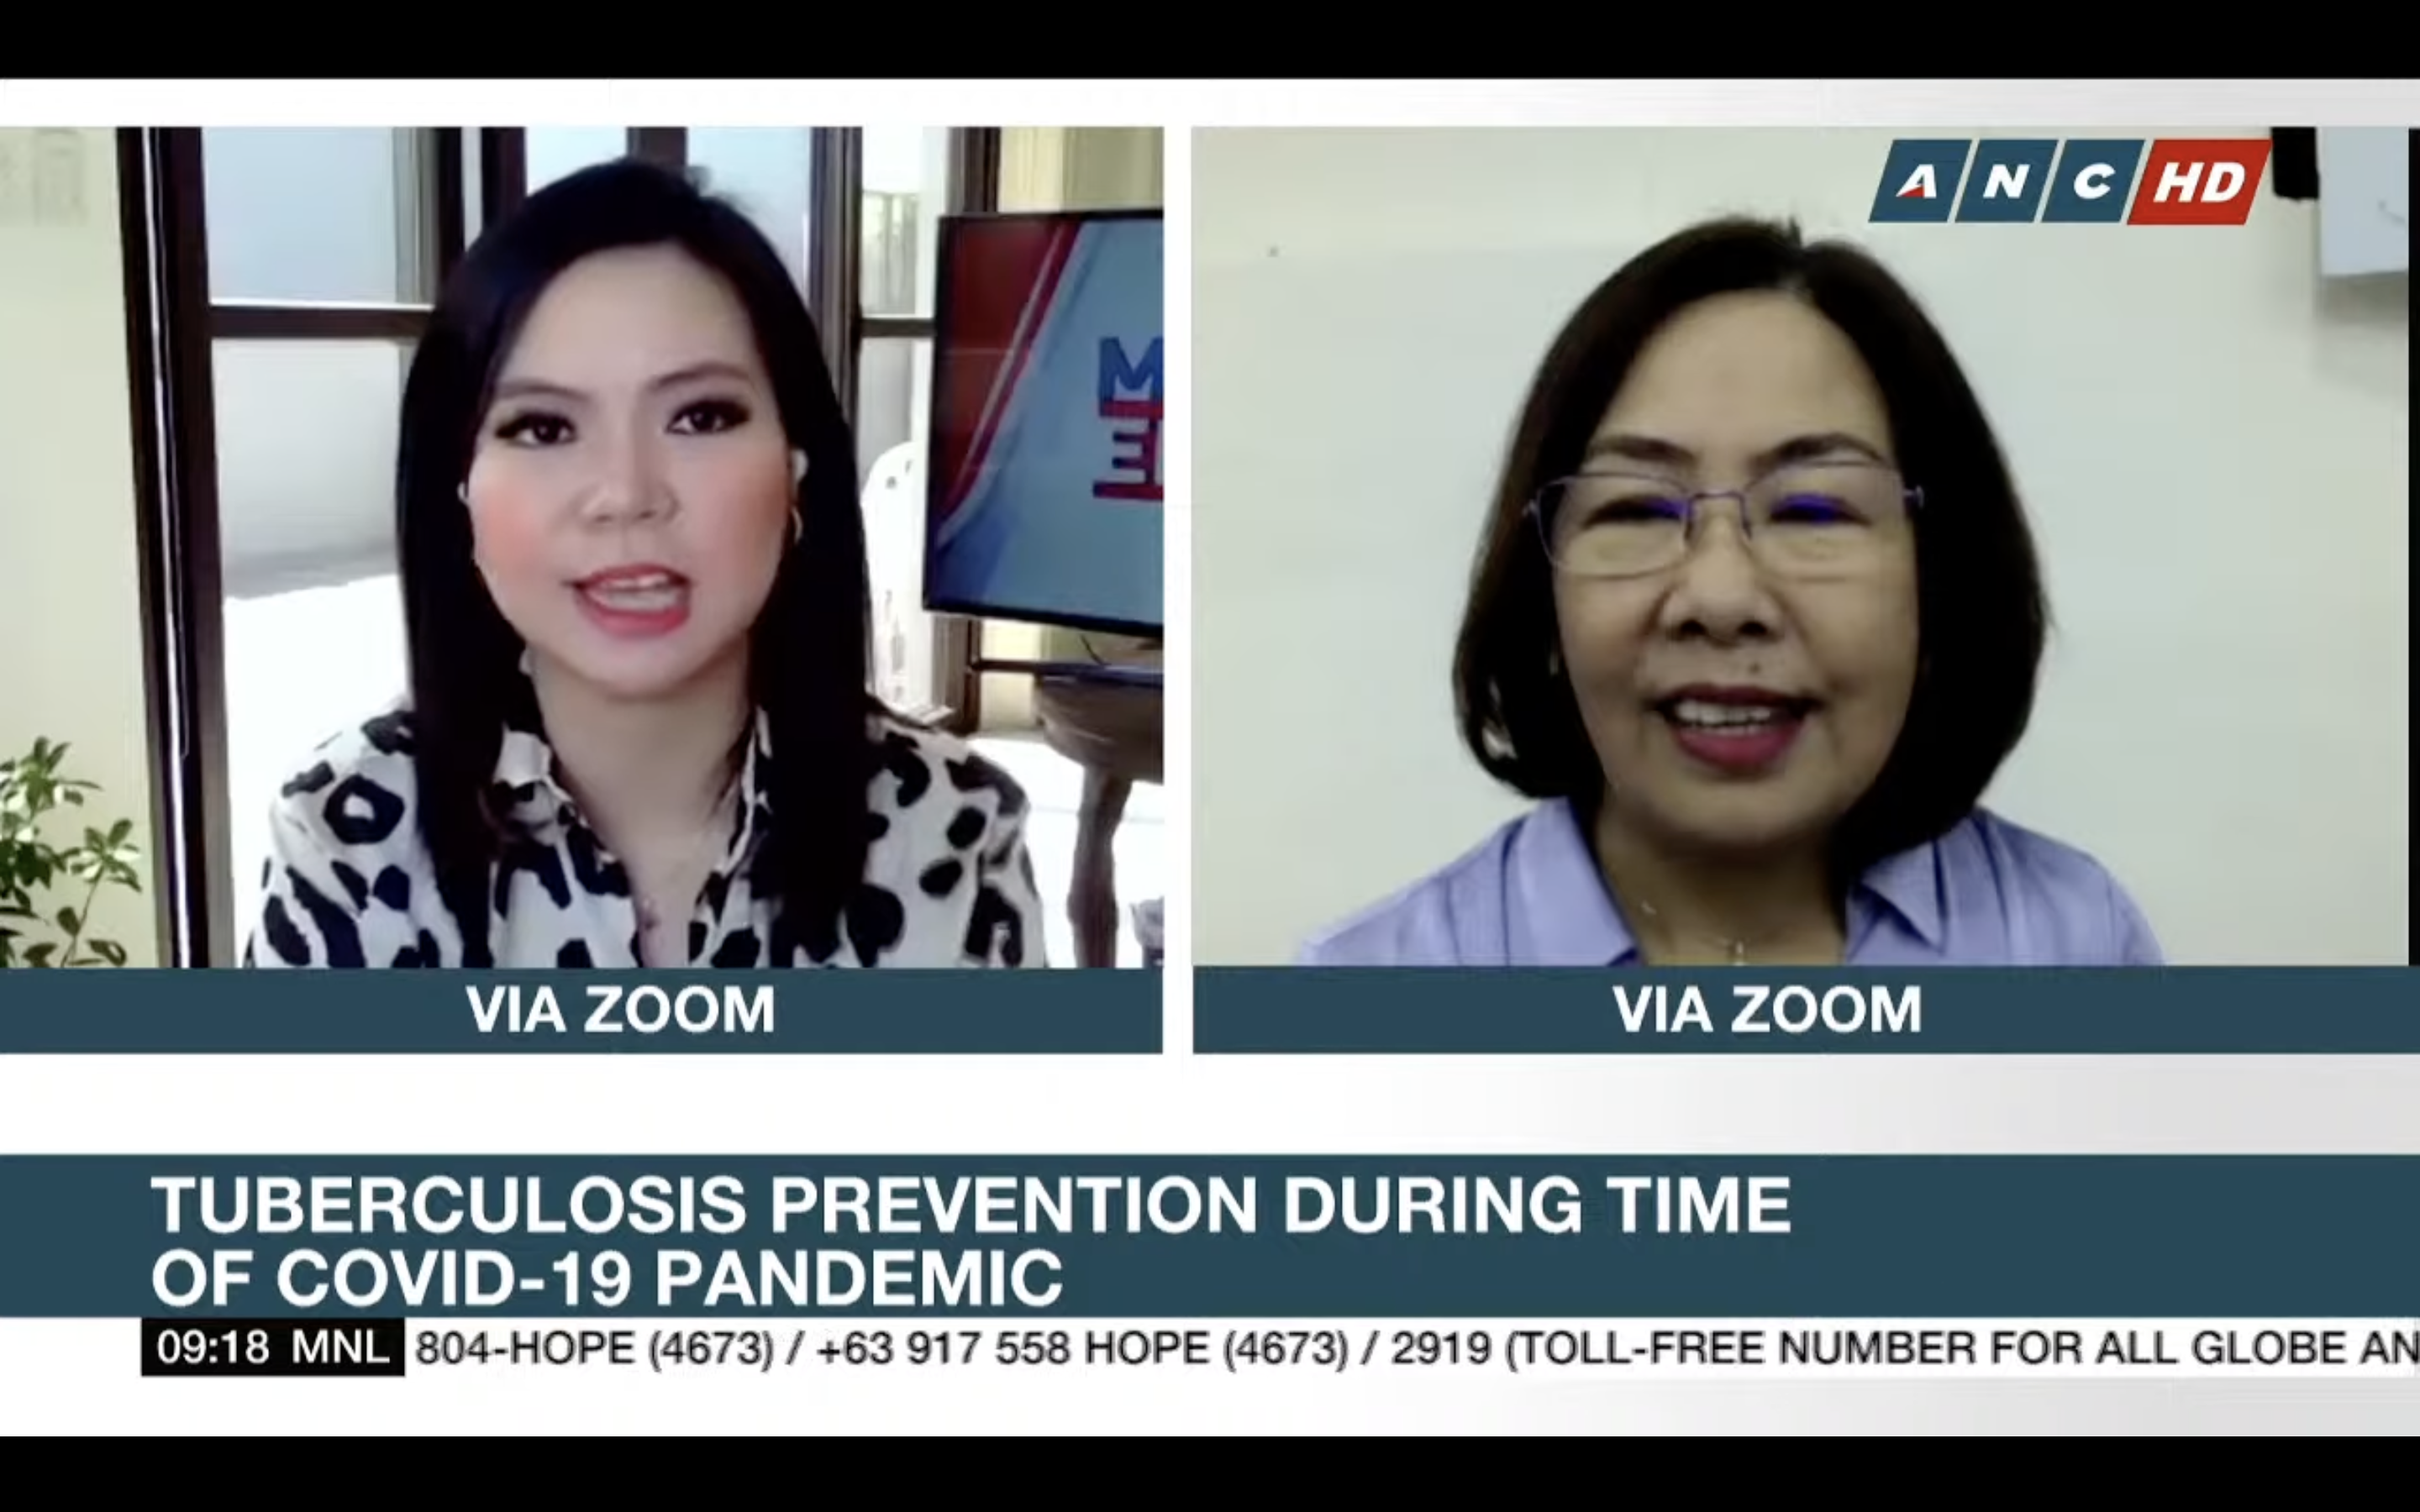 TB Prevention During Time of COVID-19 Pandemic